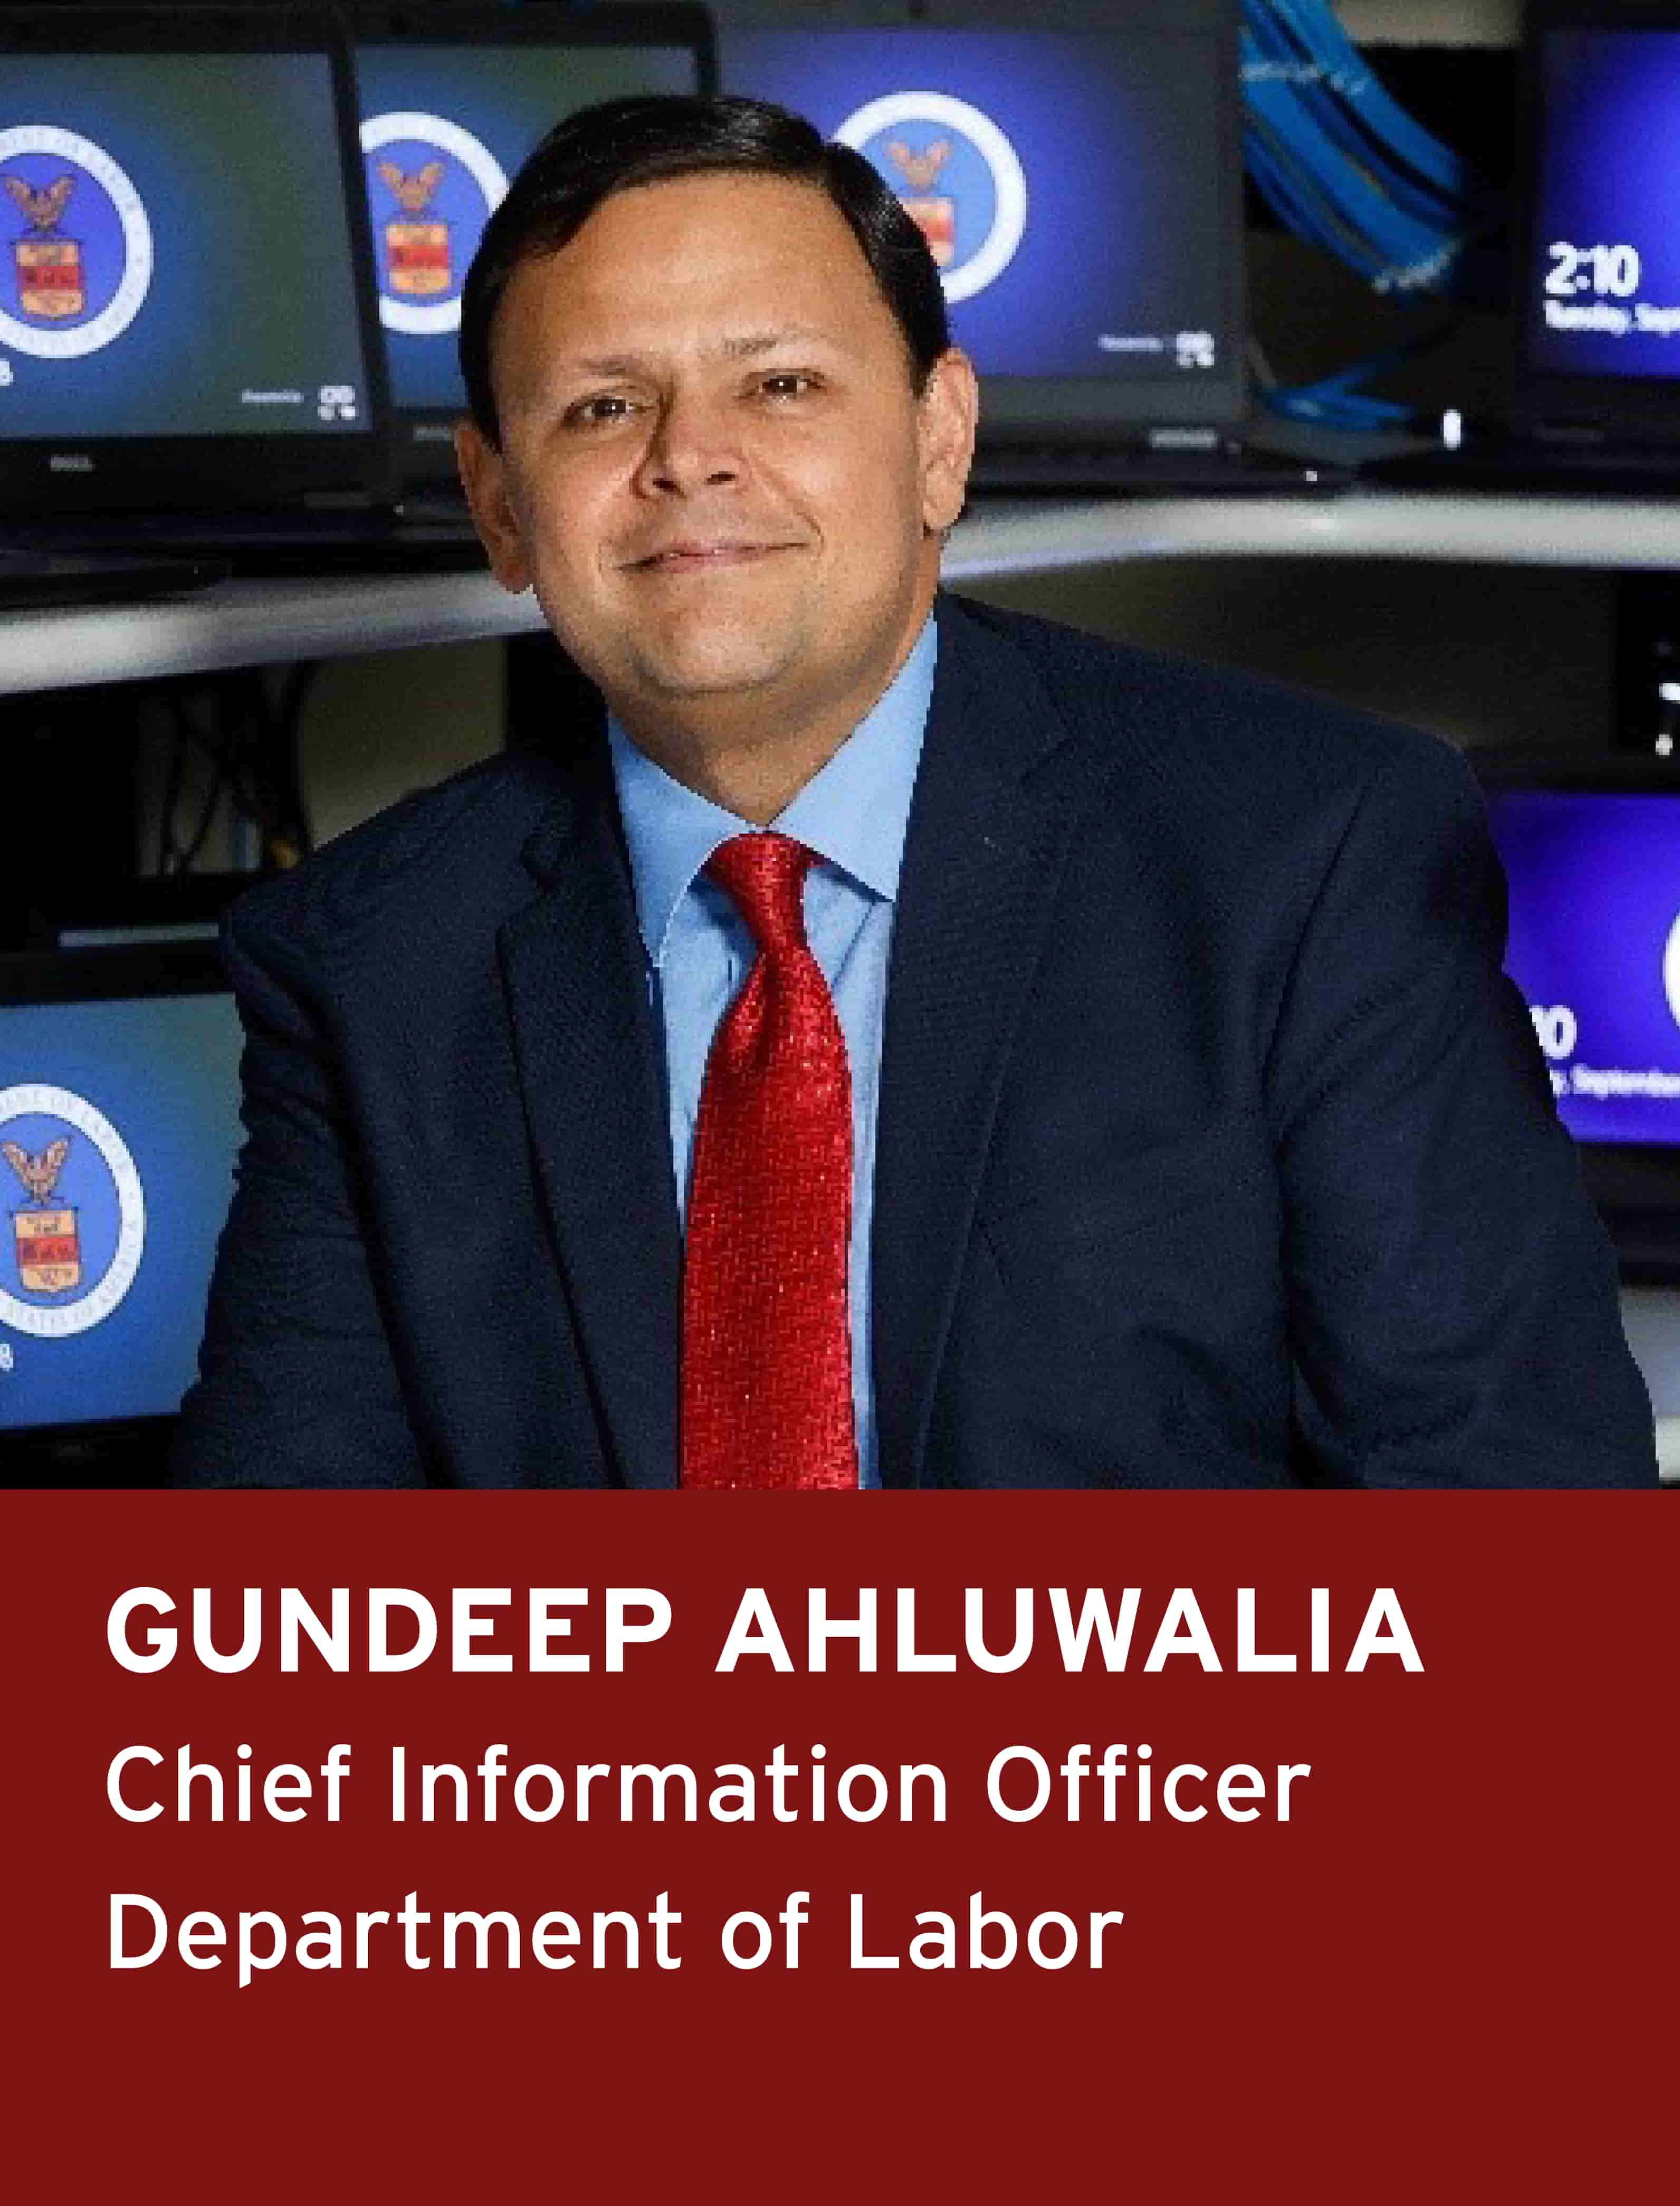 Gundeep Ahluwalia, Chief Information Officer, U.S. Department of Labor